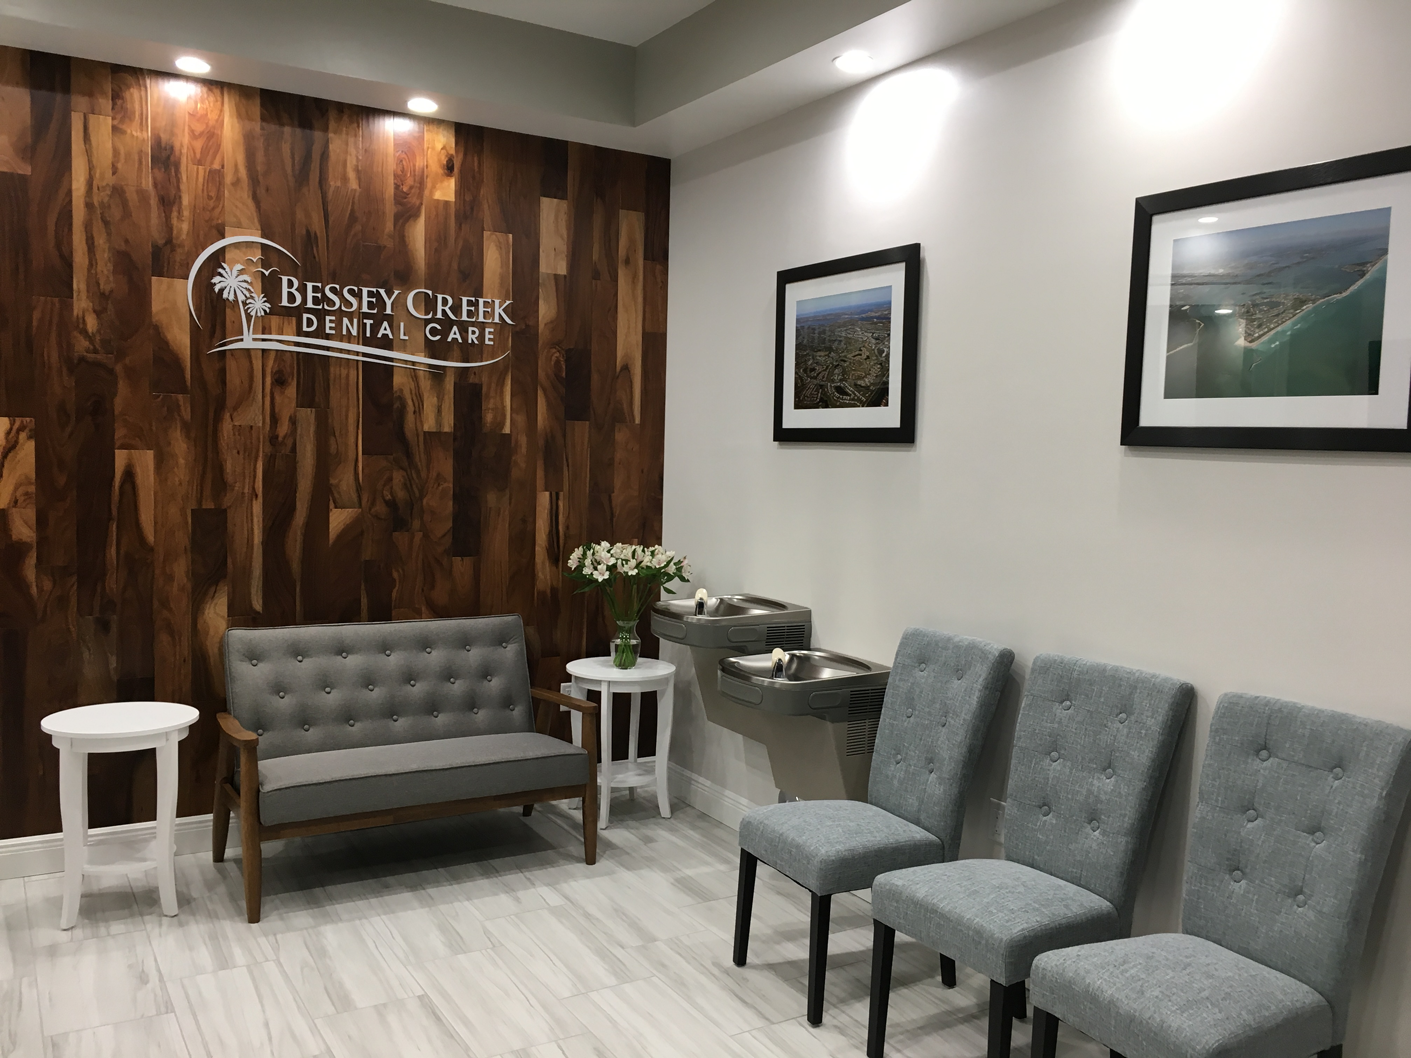 Bessey Creek Dental Care Office Placeholder | Dr. Steven Kline, Palm City Dentist serving Palm City, Martin Downs, Stuart, Port St. Lucie, Port Salerno and Martin County.